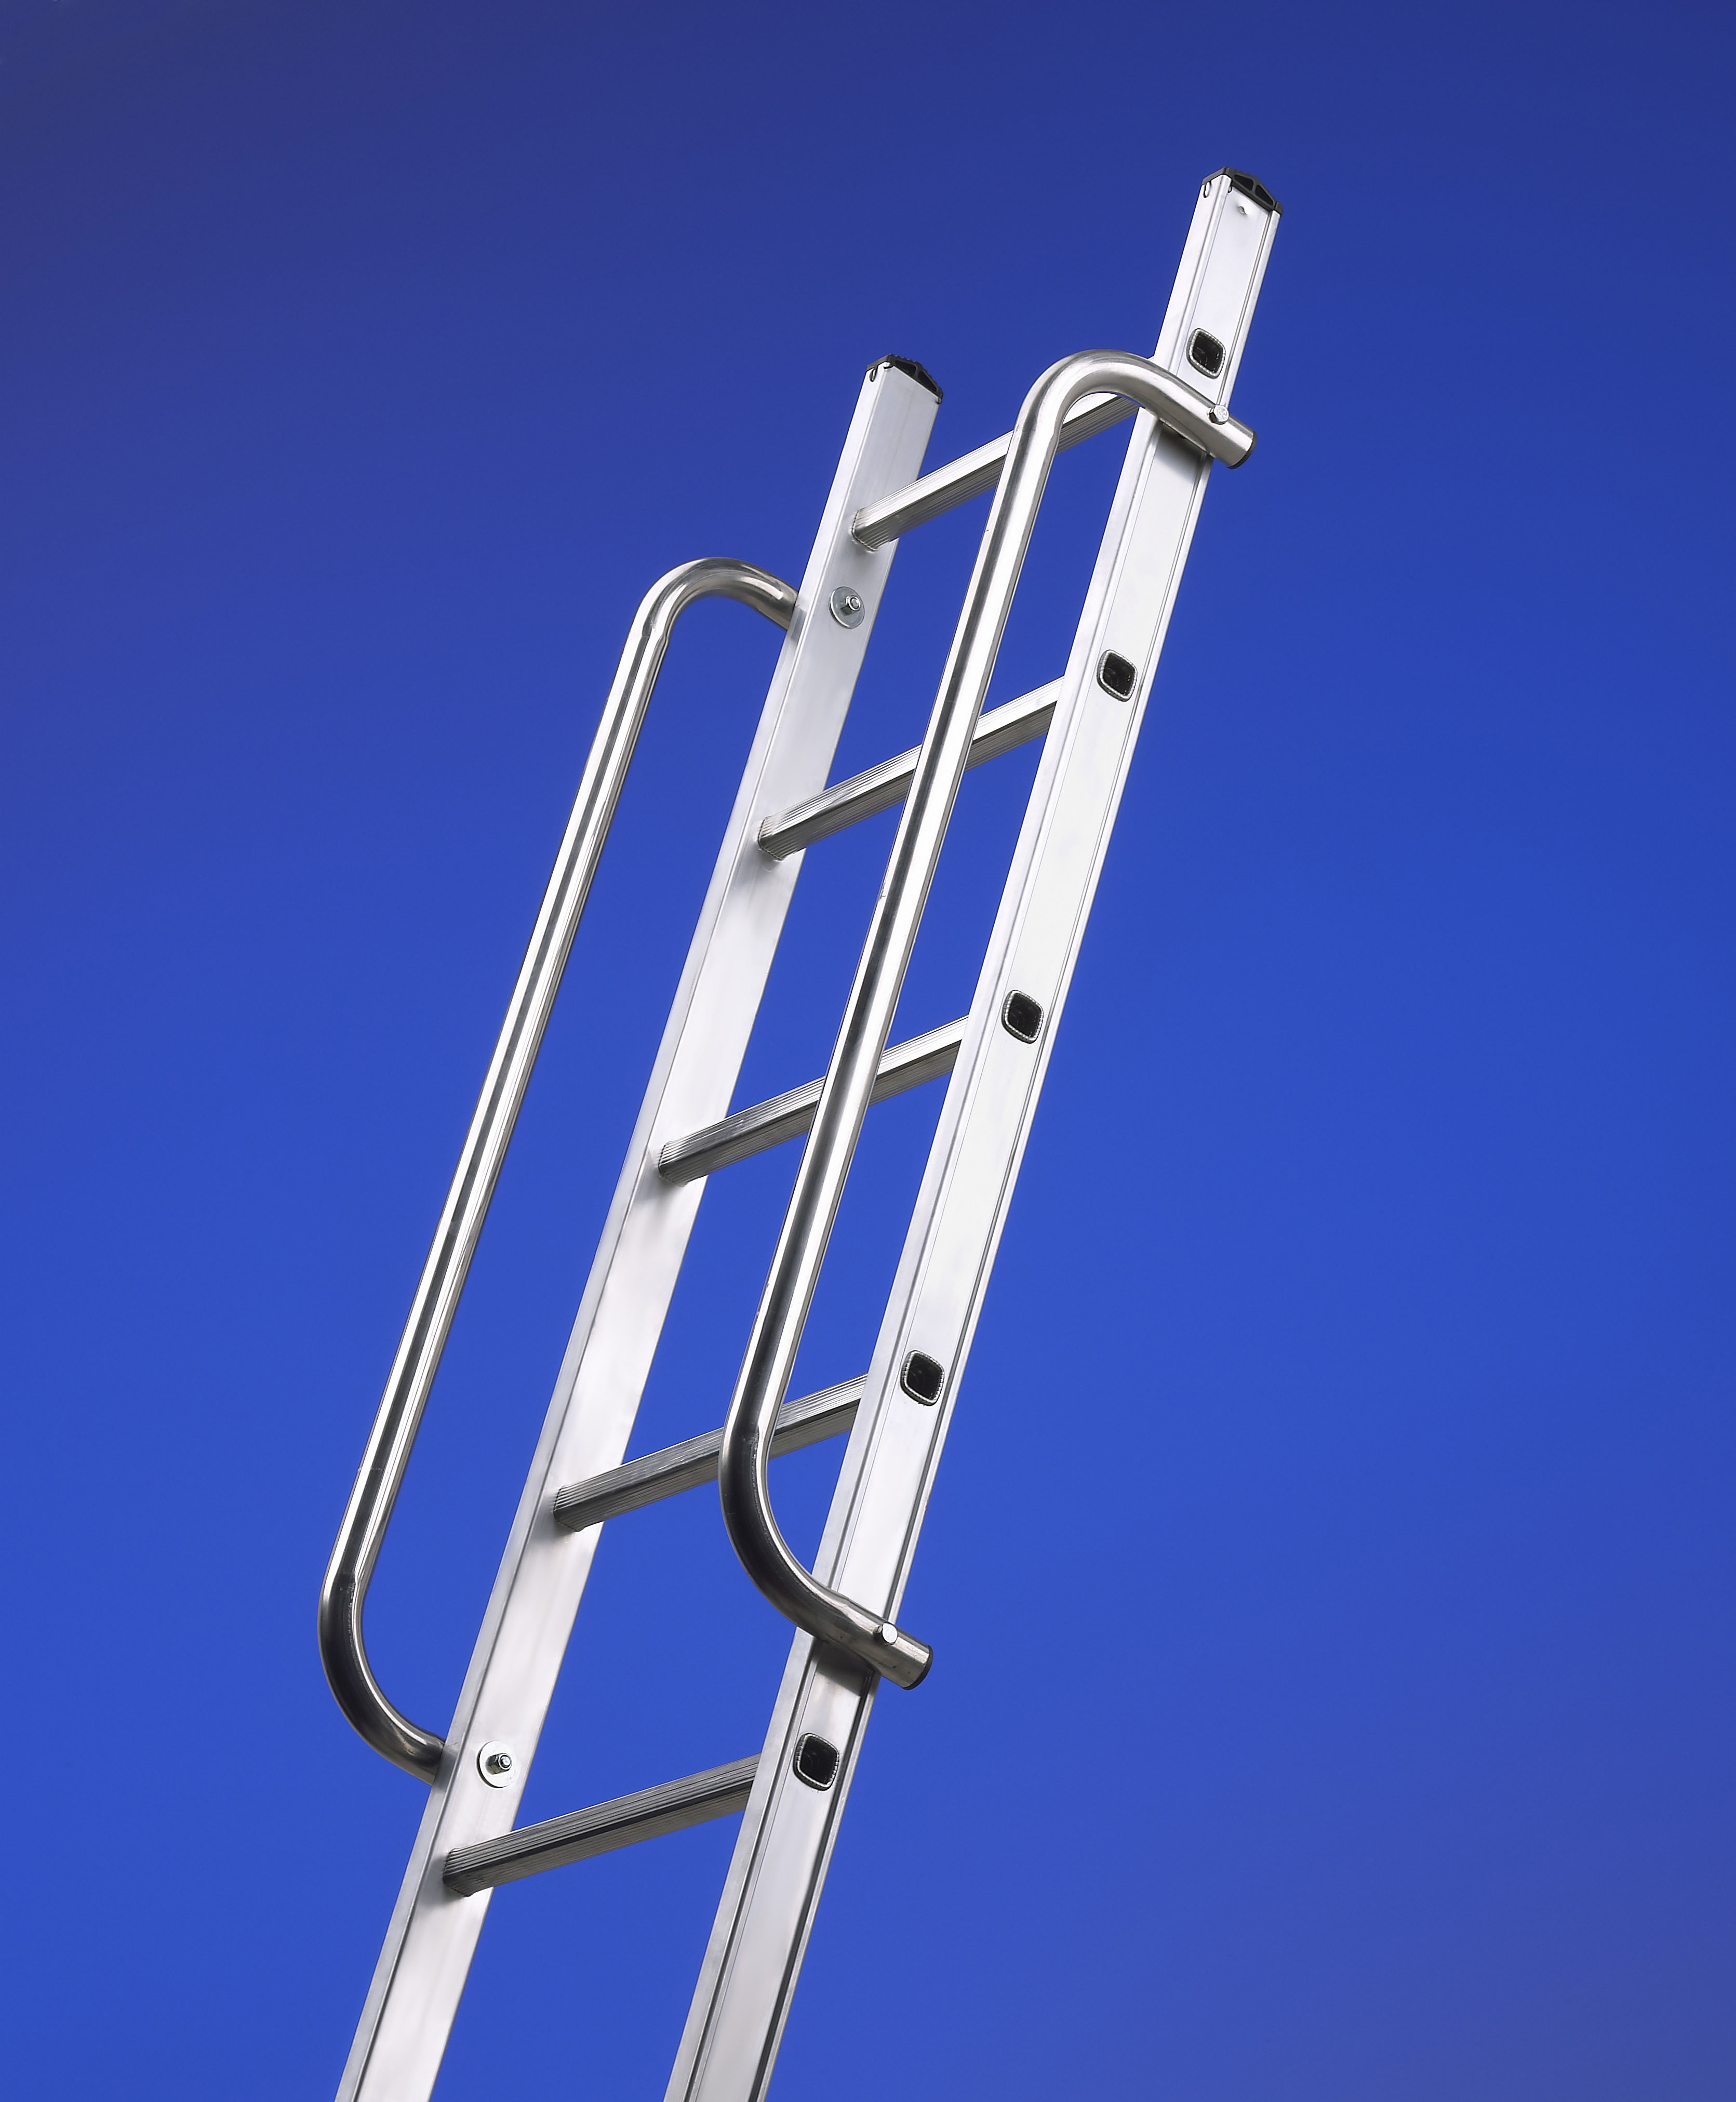 Accessories for ladders